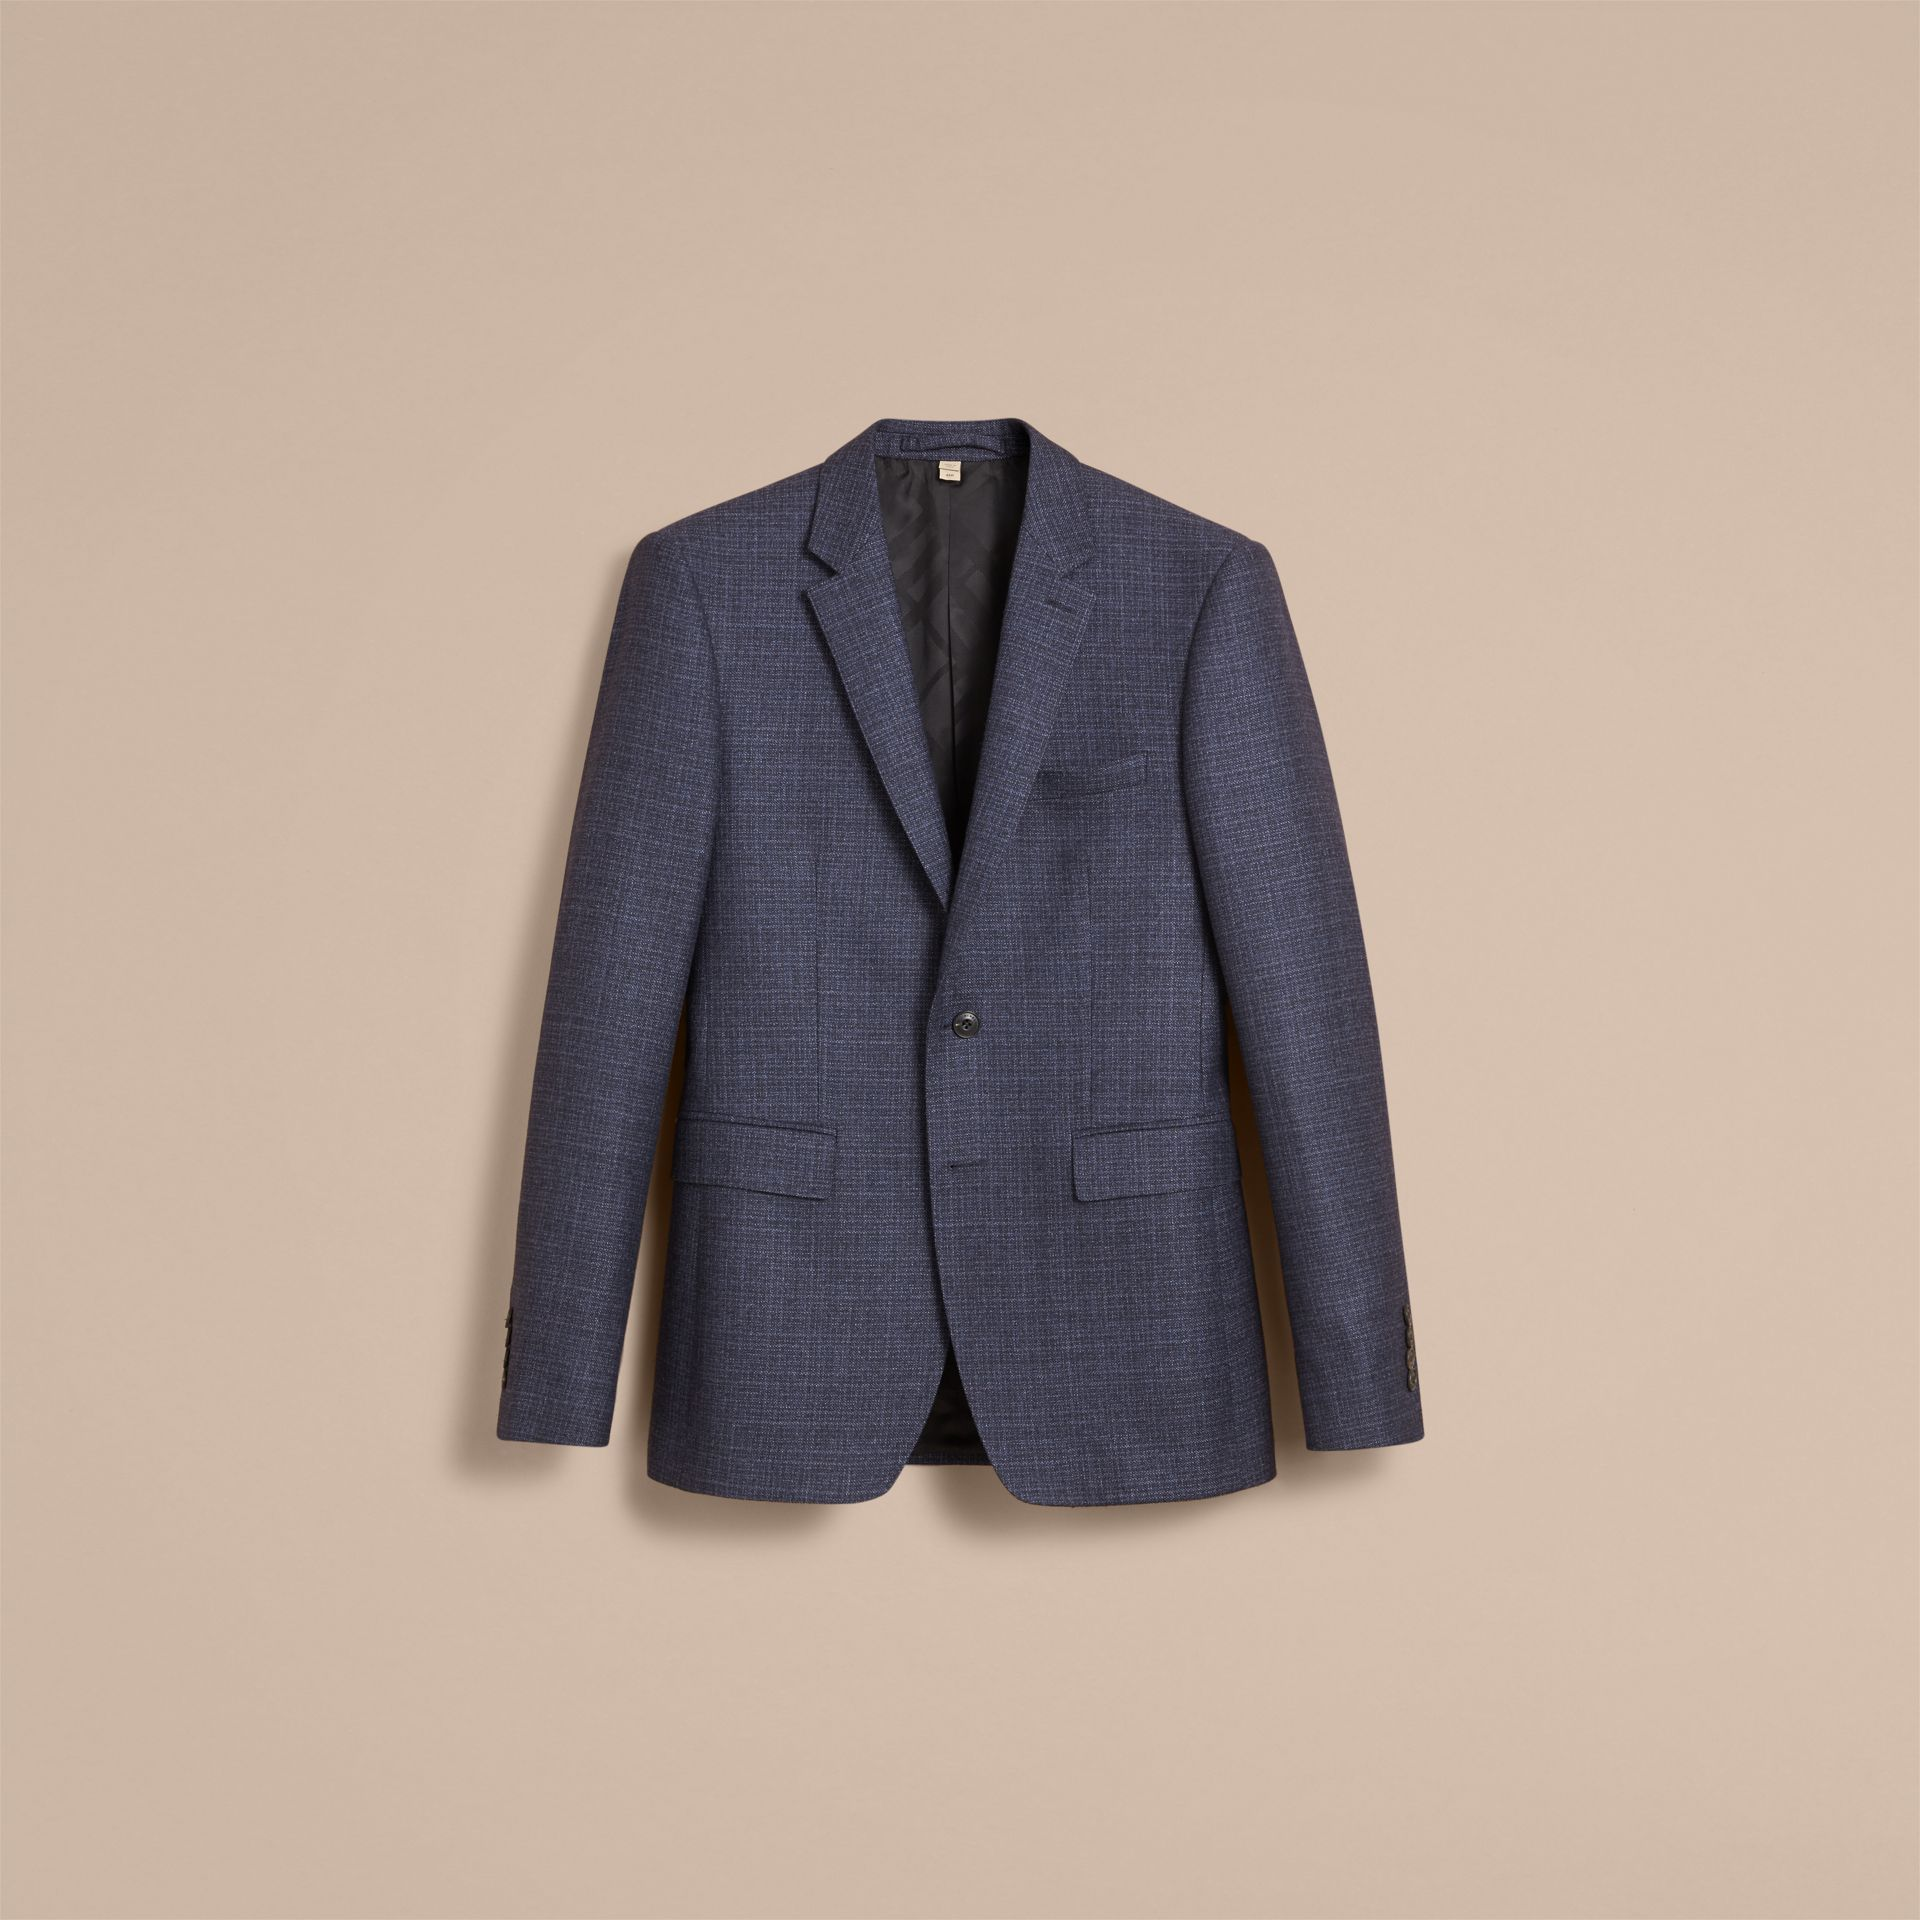 Slim Fit Lightweight Wool Part-canvas Suit in Bright Navy - Men | Burberry - gallery image 4